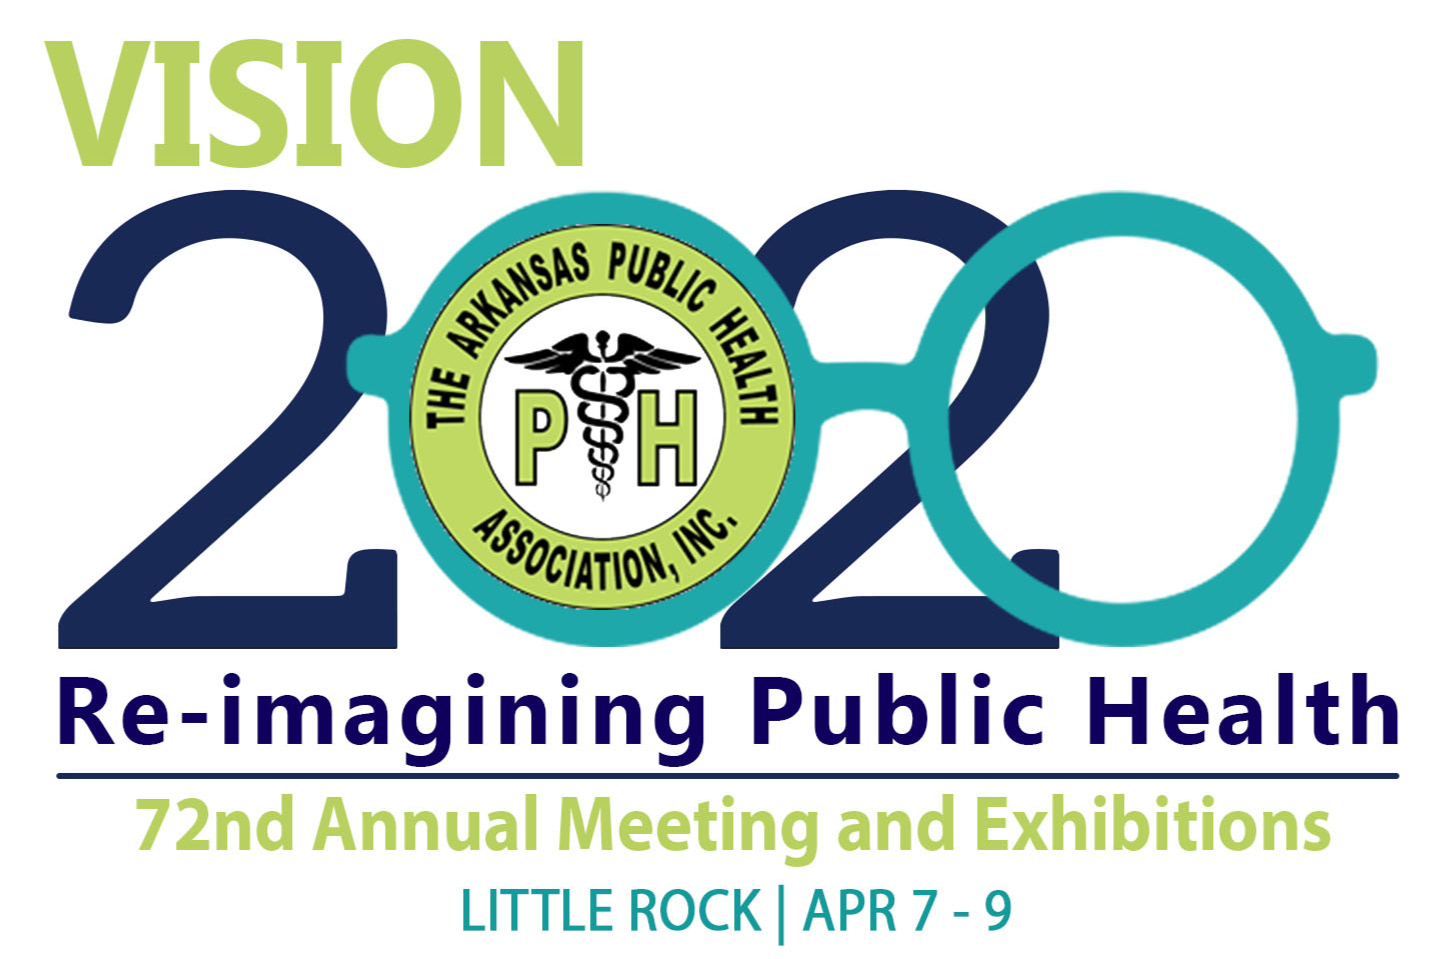 APHA 72nd Annual Meeting and Exhibitions